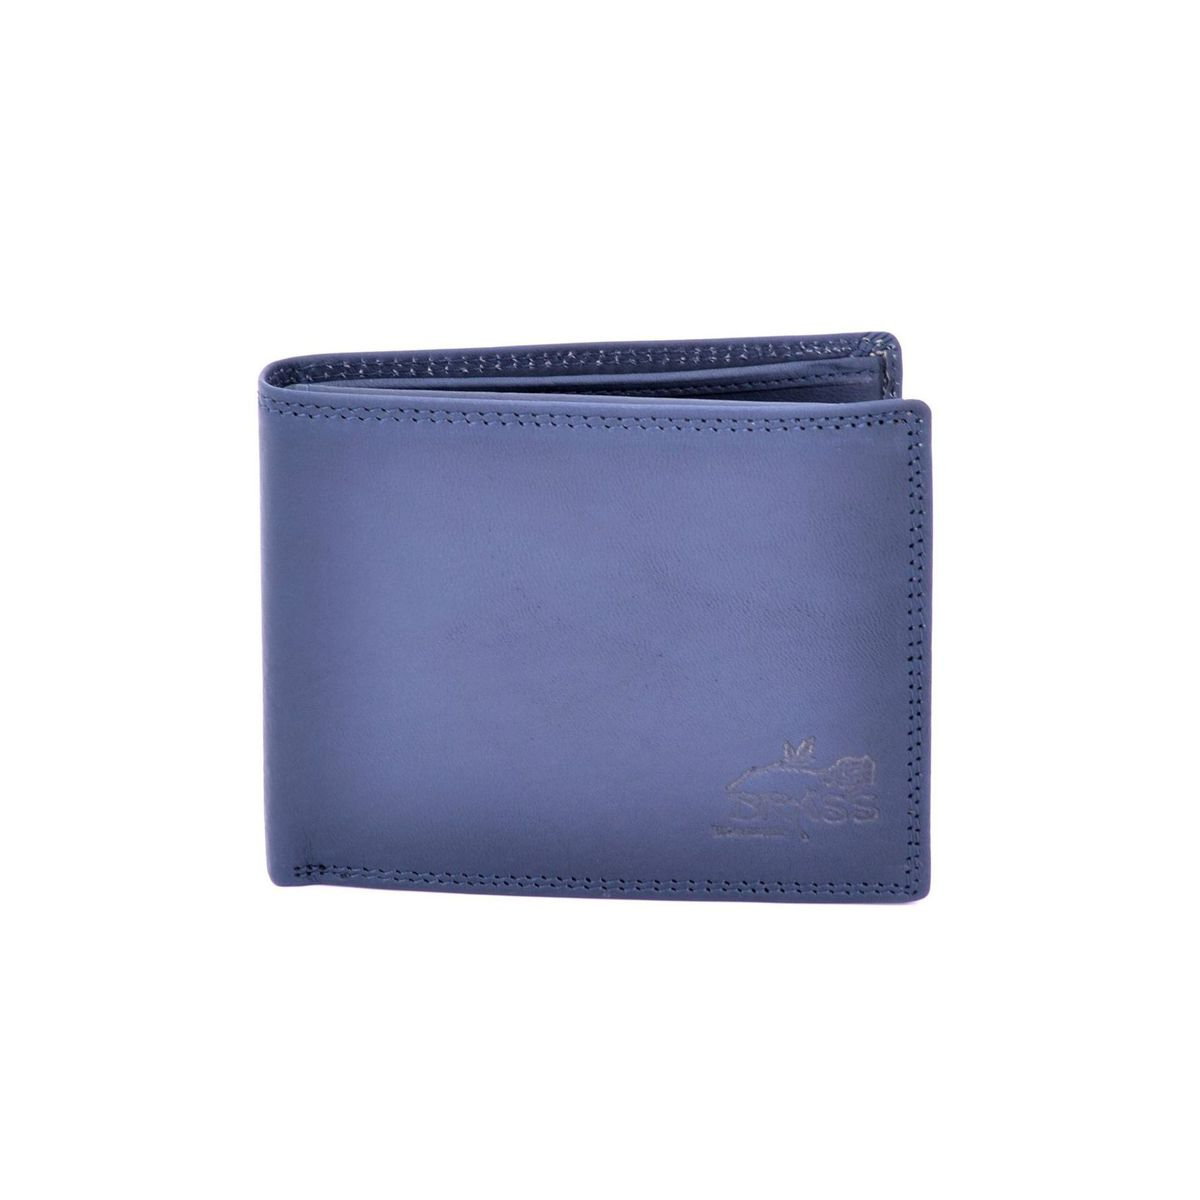 Double stitched leather wallet Blue BRASS Workshop